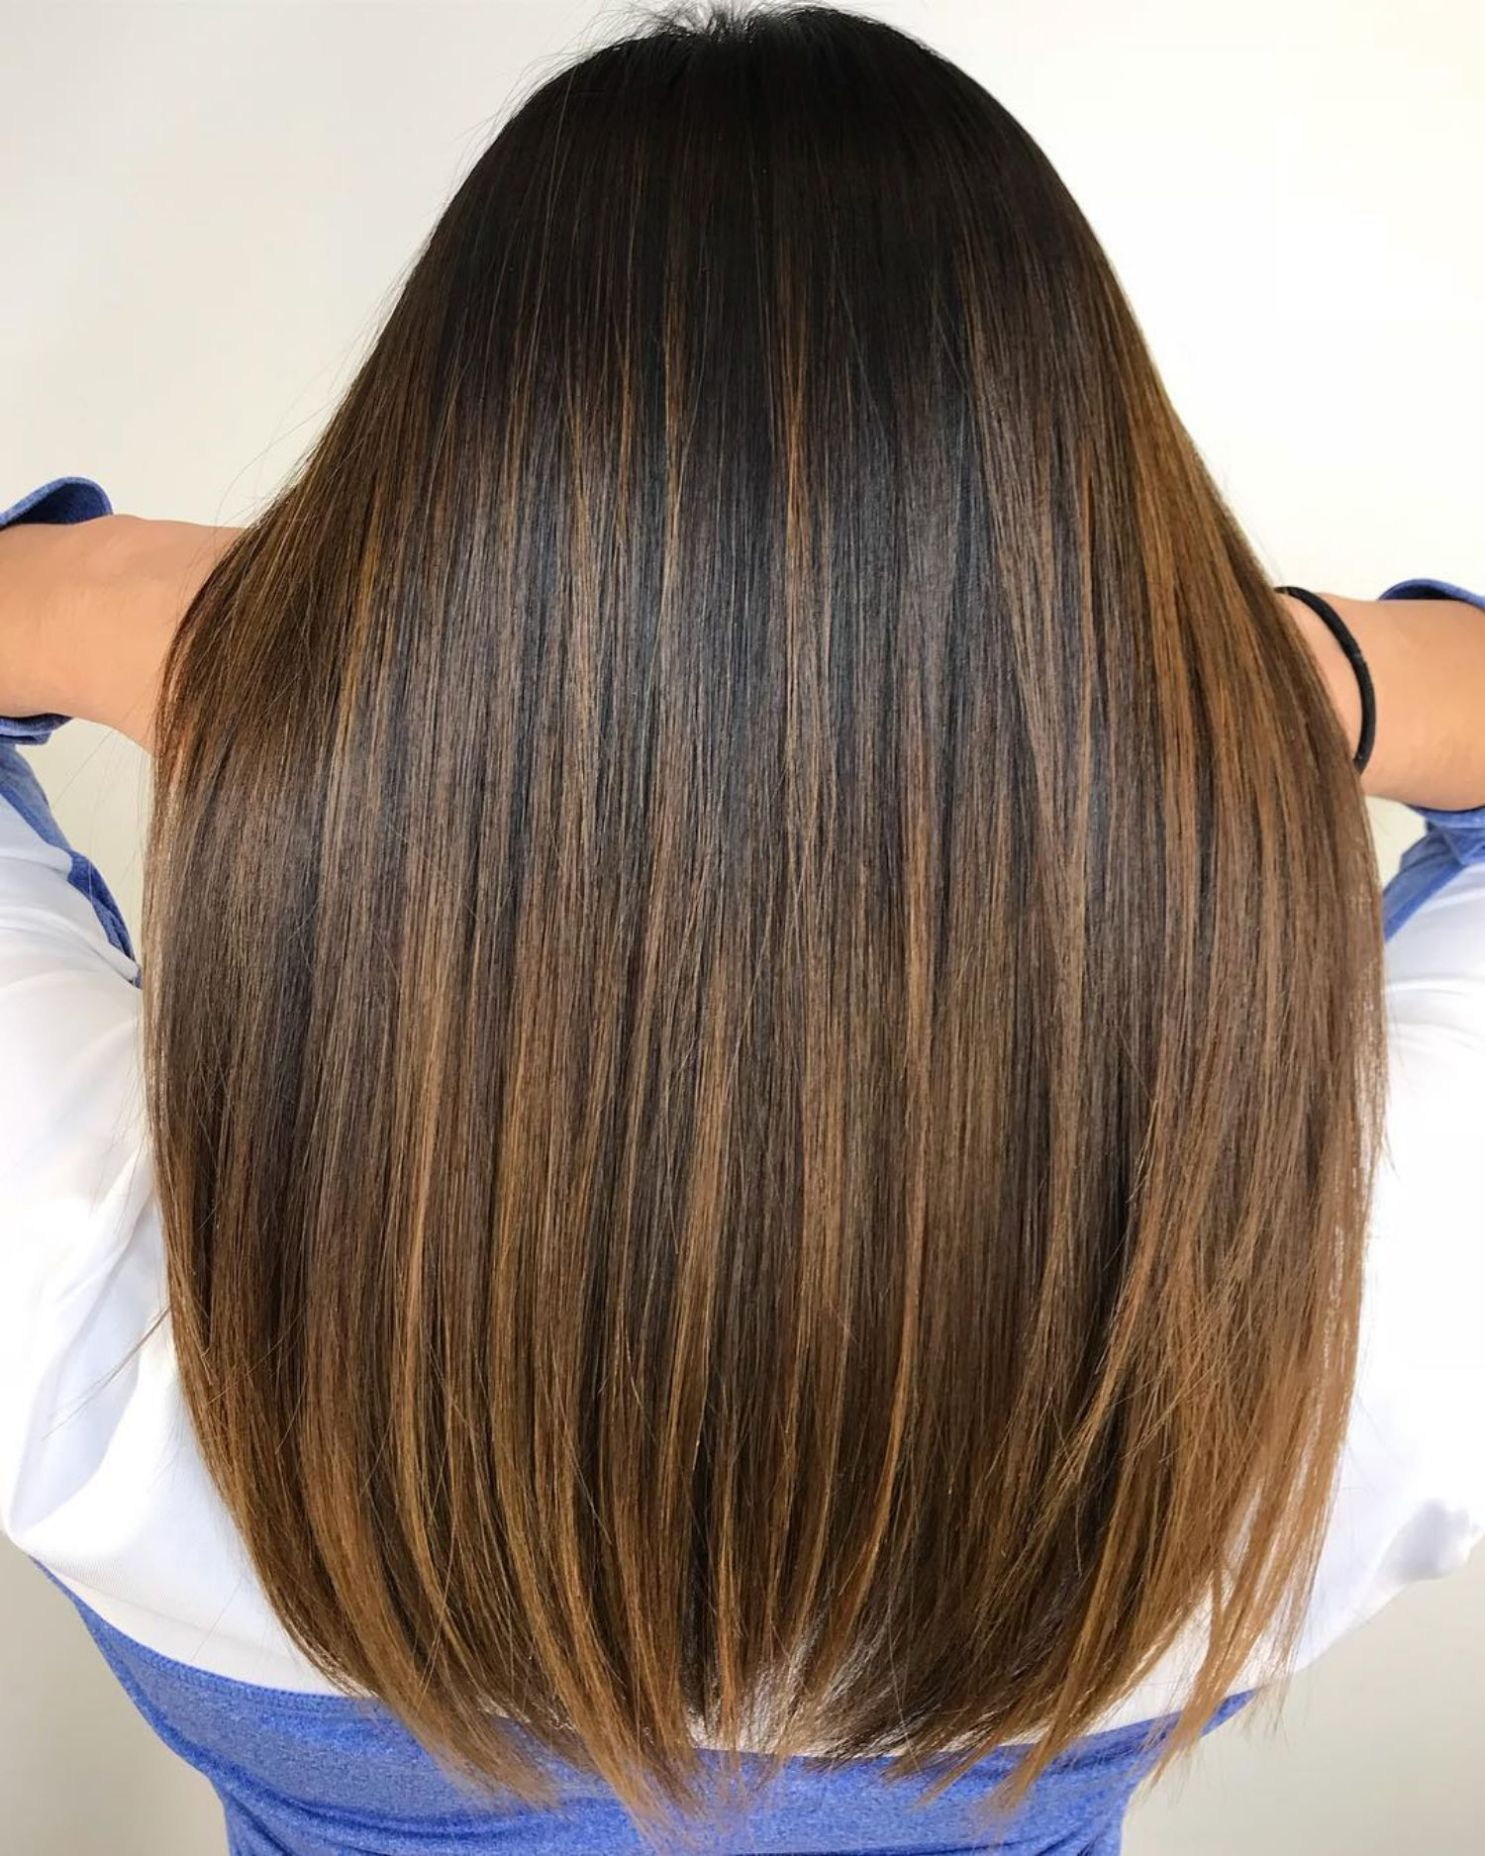 60 Looks With Caramel Highlights On Brown And Dark Brown Hair Caramel Hair Highlights Brown Hair Shades Brown Hair Balayage